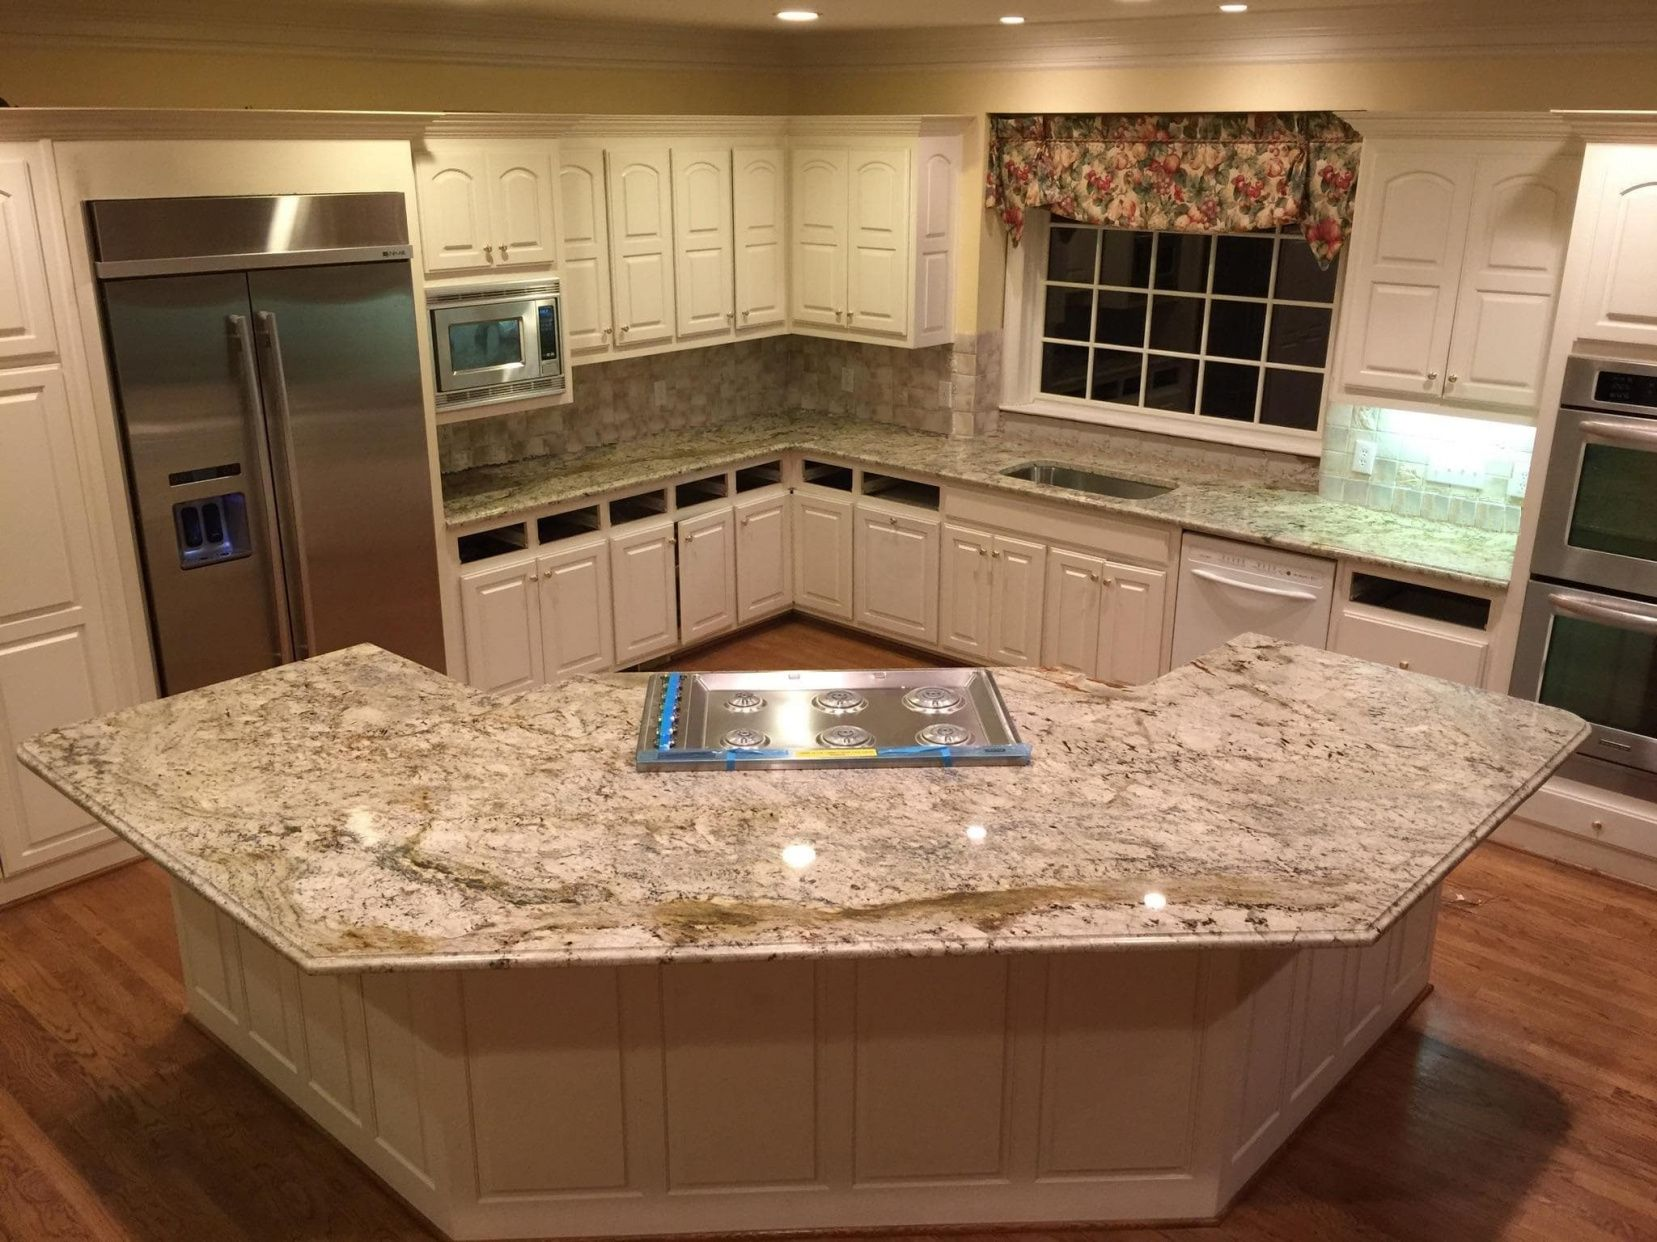 70 how much is granite countertop unique kitchen backsplash ideas check more at http